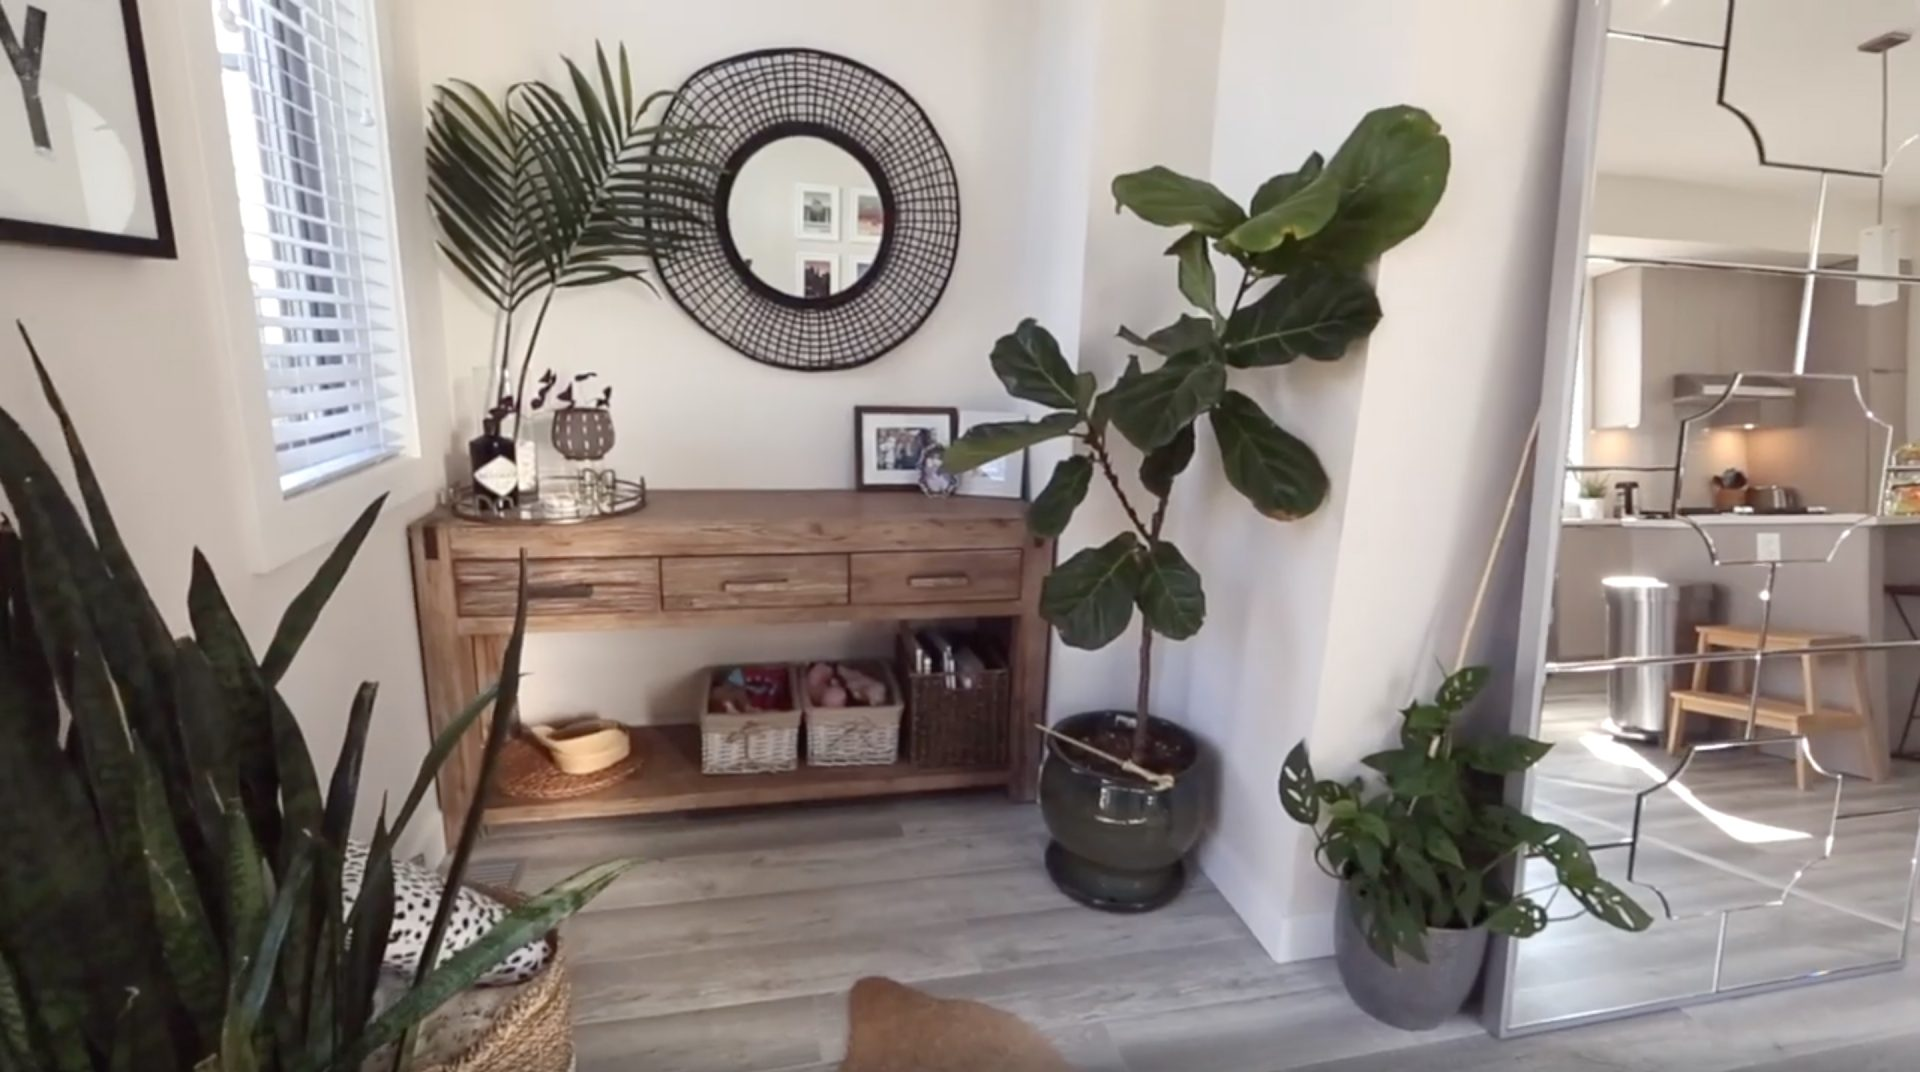 A nook in our Dining room, featuring a wooden console table with family photos, a rattan round mirror and some fake palm leaves in a vase. Large Fiddle Leaf Fig tree in the right of the frame